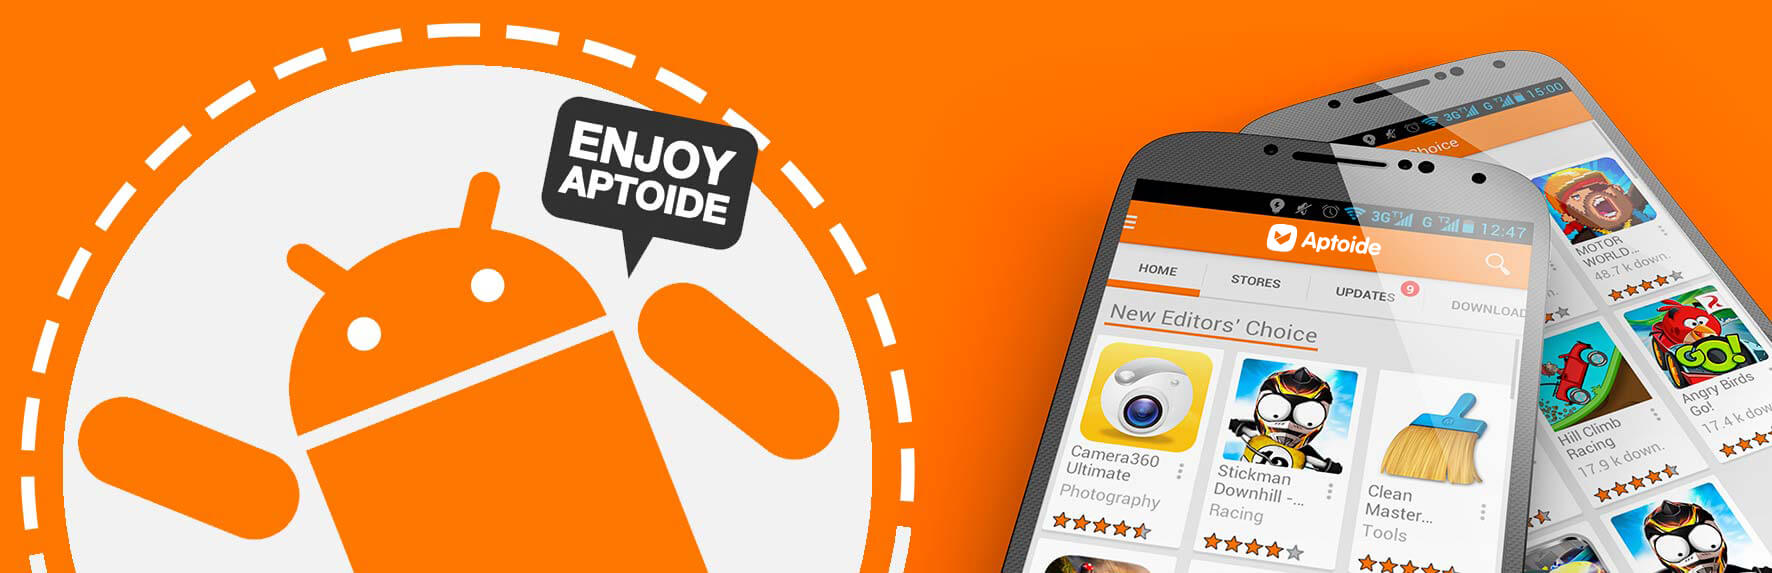 Aptoide About